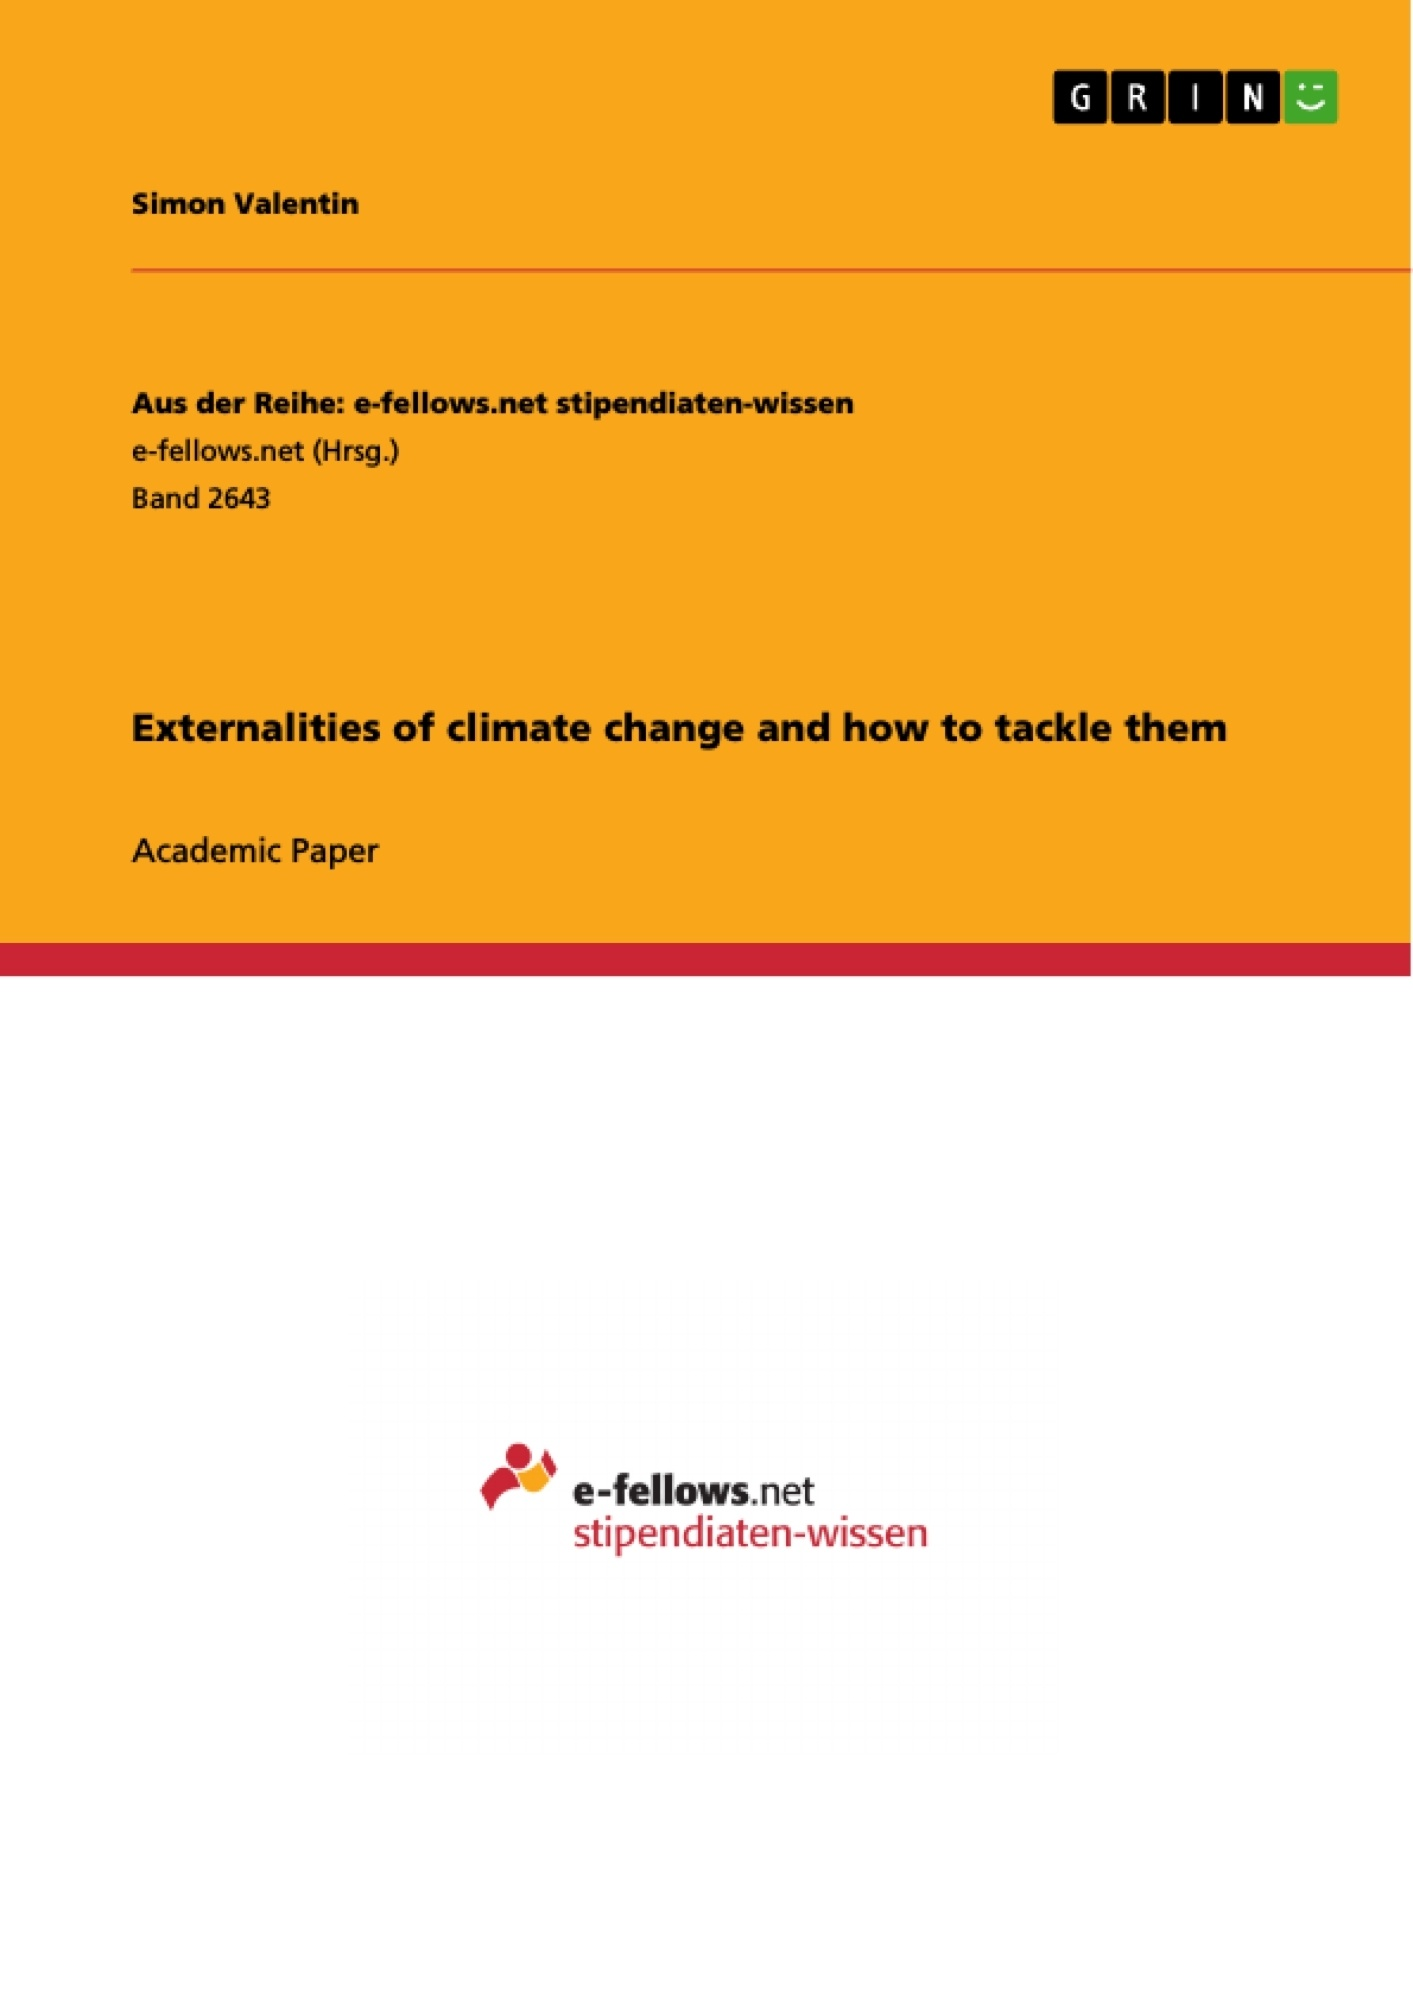 Title: Externalities of climate change and how to tackle them